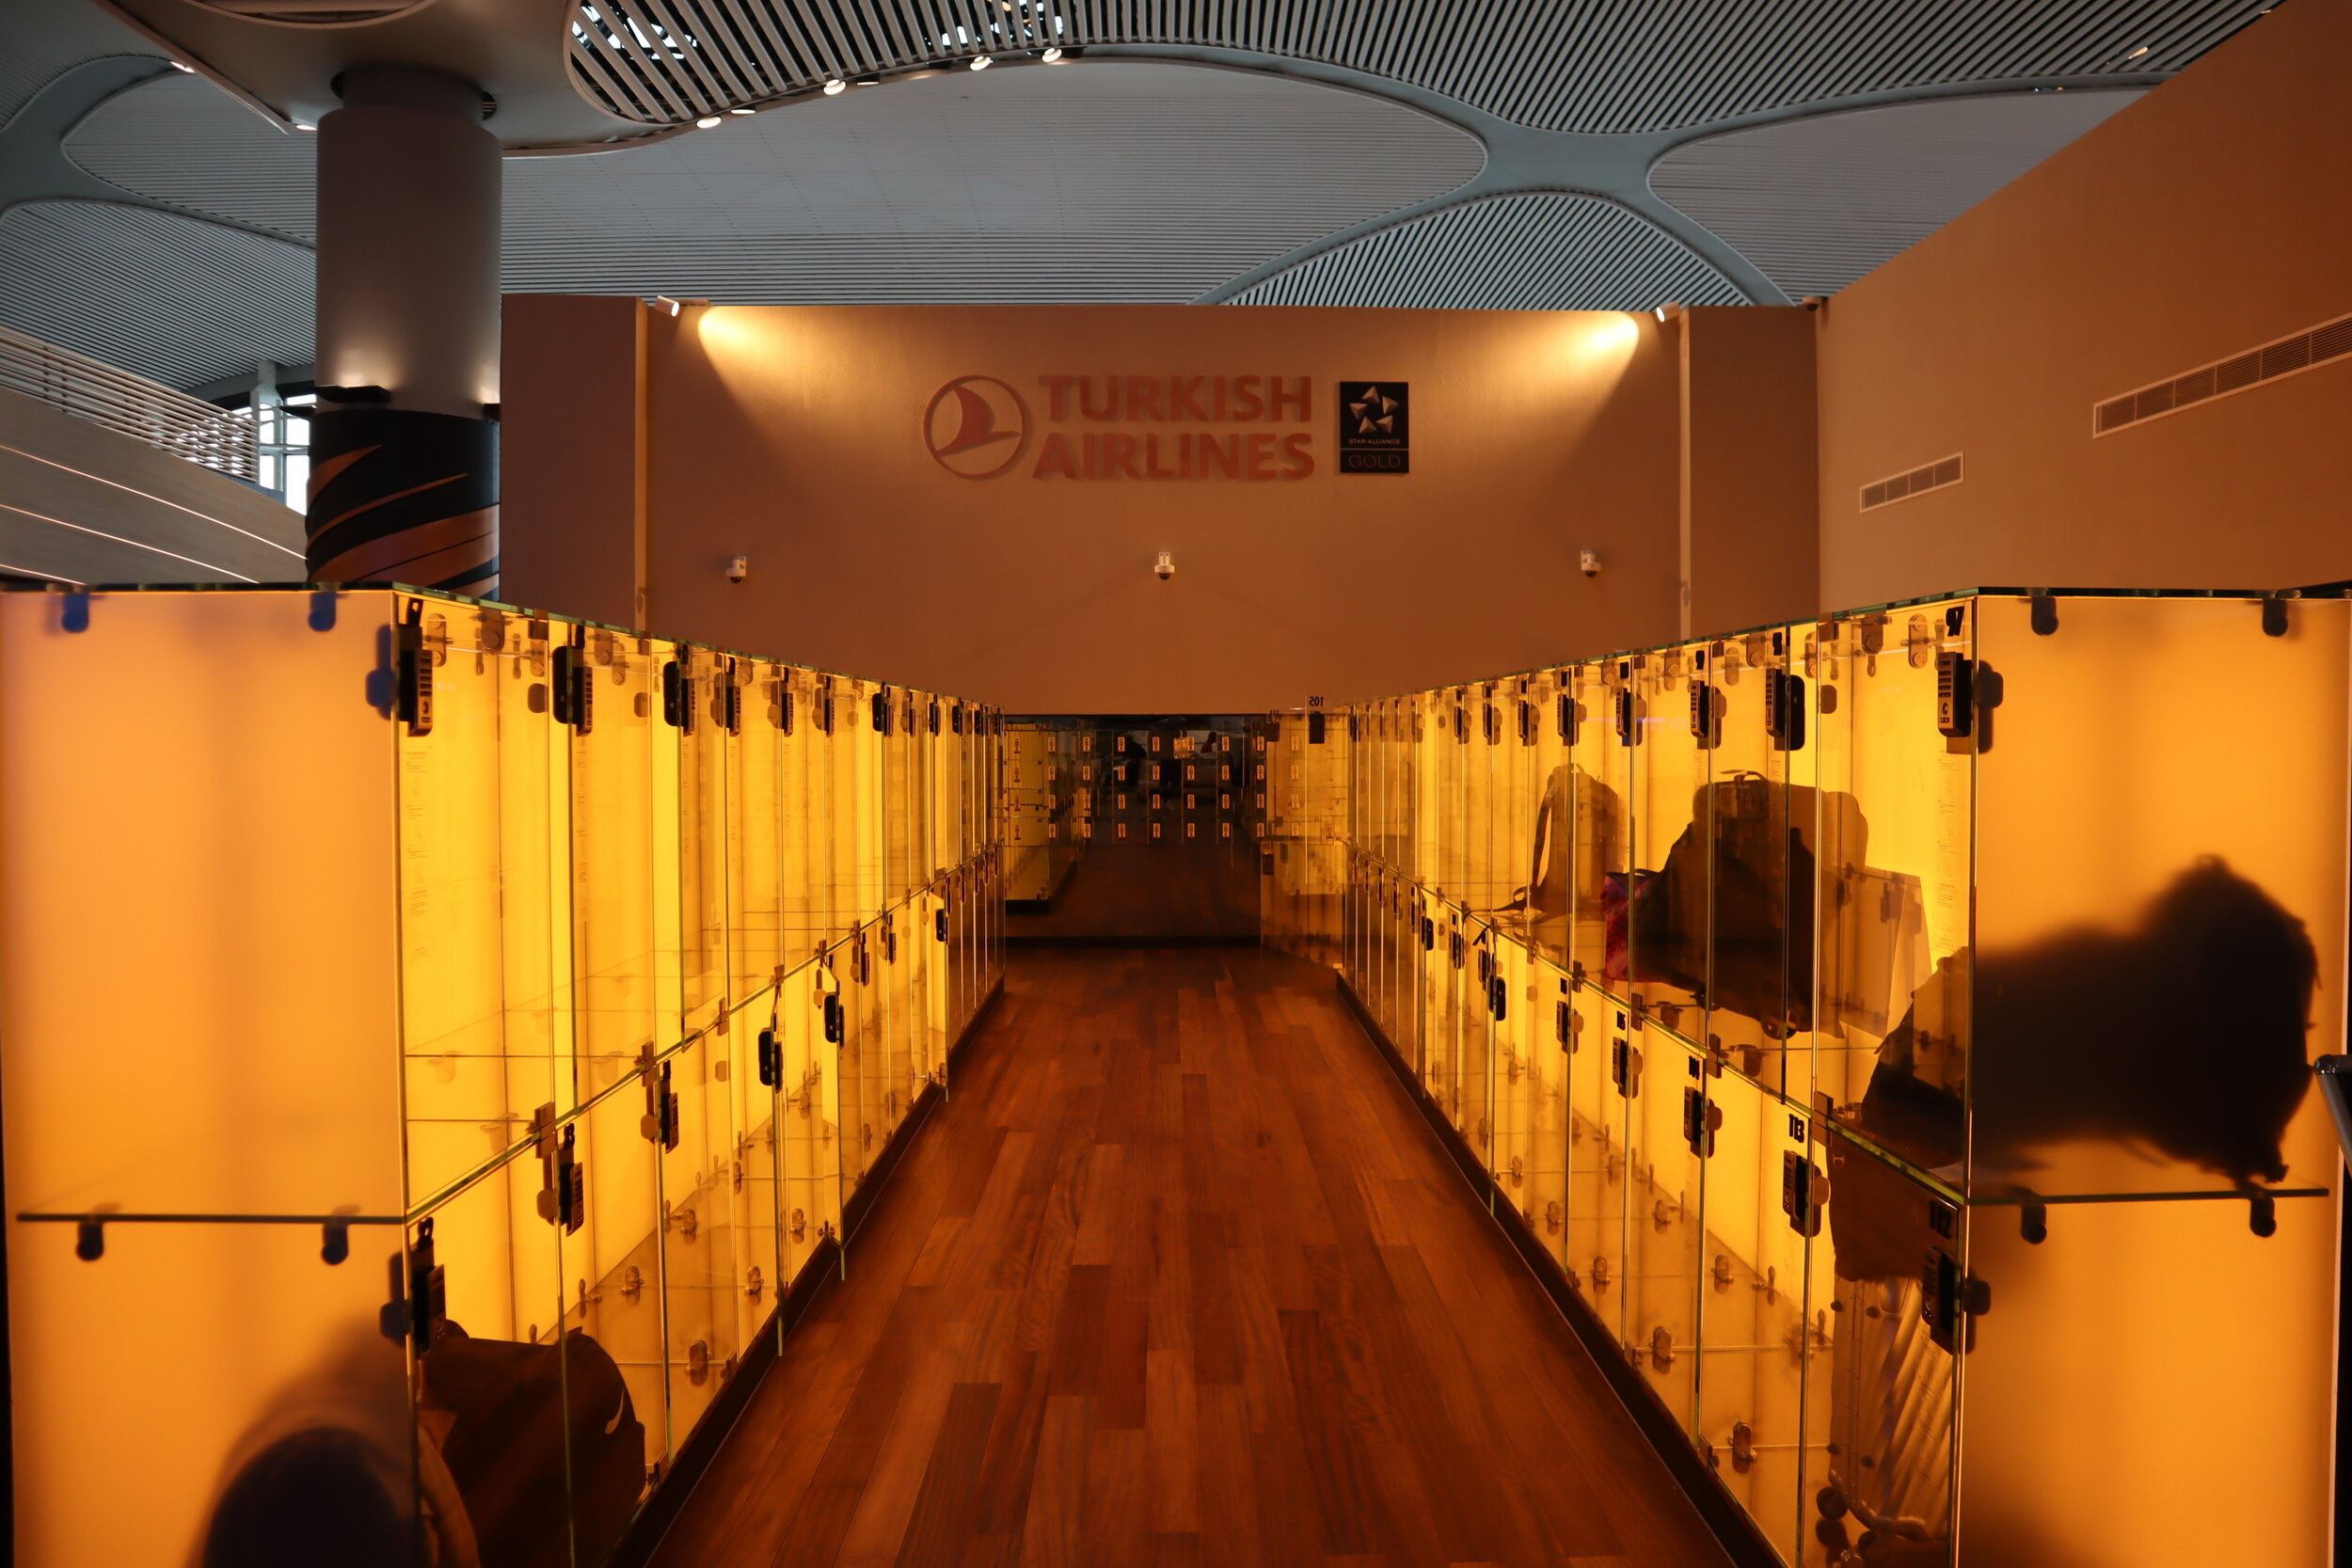 Turkish Airlines Business Lounge Istanbul – Lockers